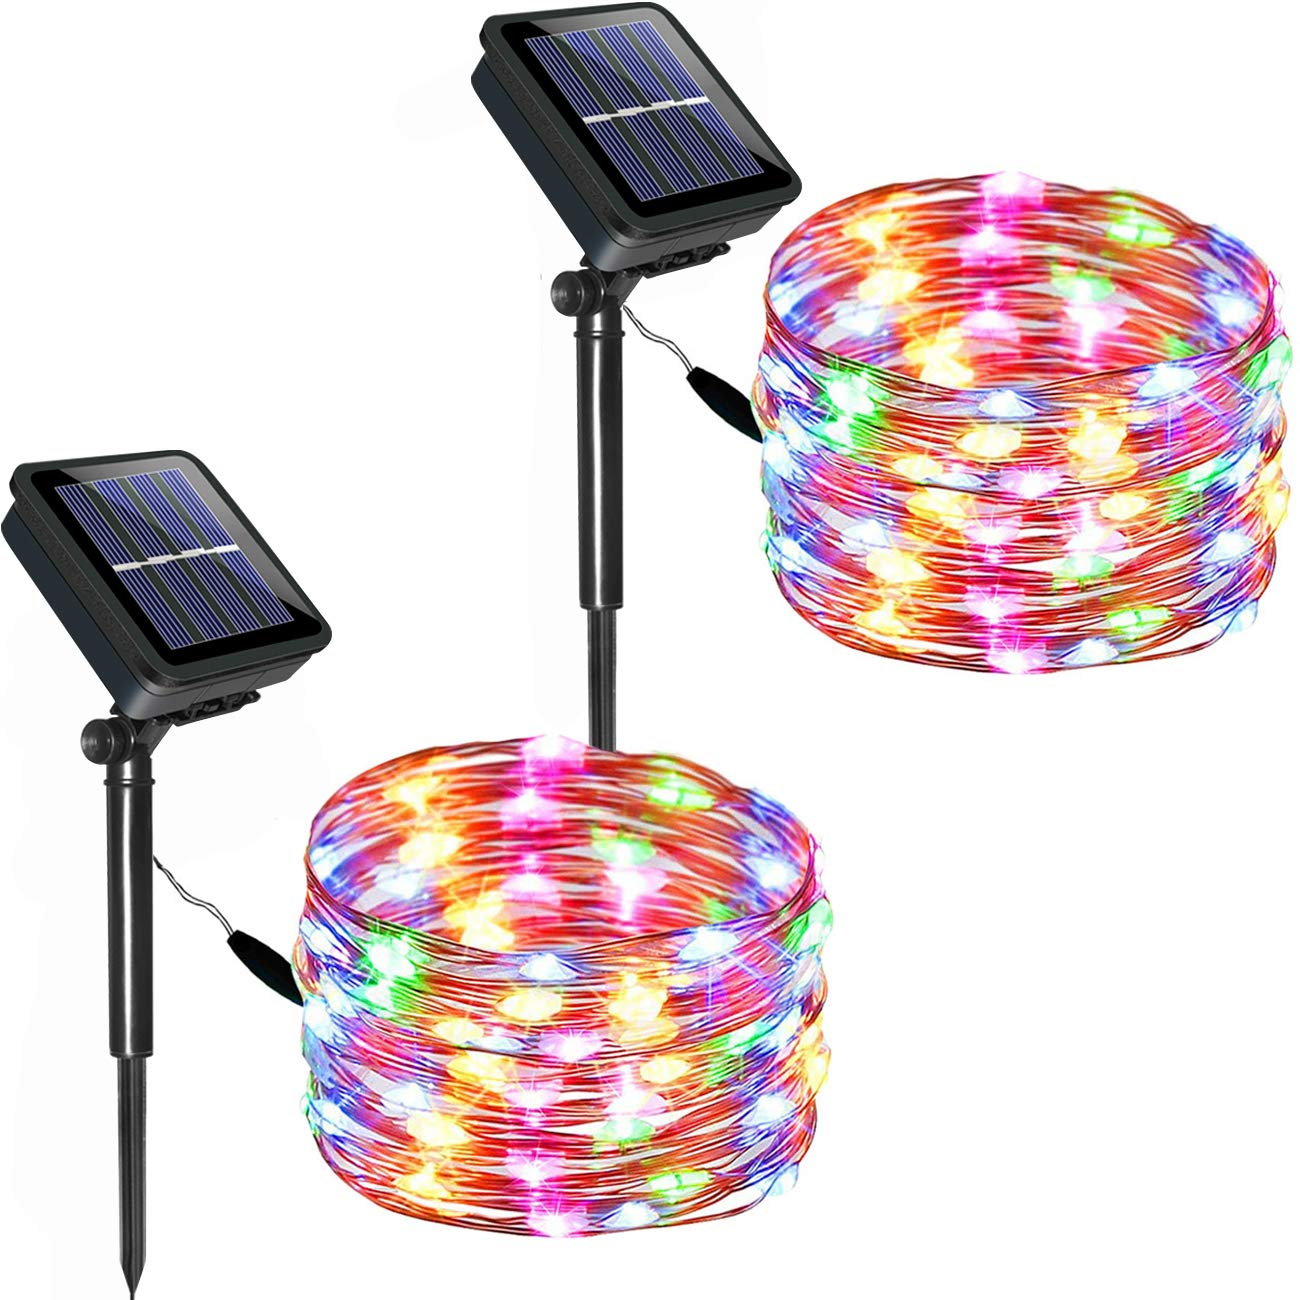 DOLUCKY 2 Pack Solar String Lights,Waterproof 33ft Copper Wire Solar Christmas Lights 100 LED Fairy Lights Outdoor Decoration for Patio Garden Gate Yard Party Wedding Christmas Xmas Tree (Multicolor)